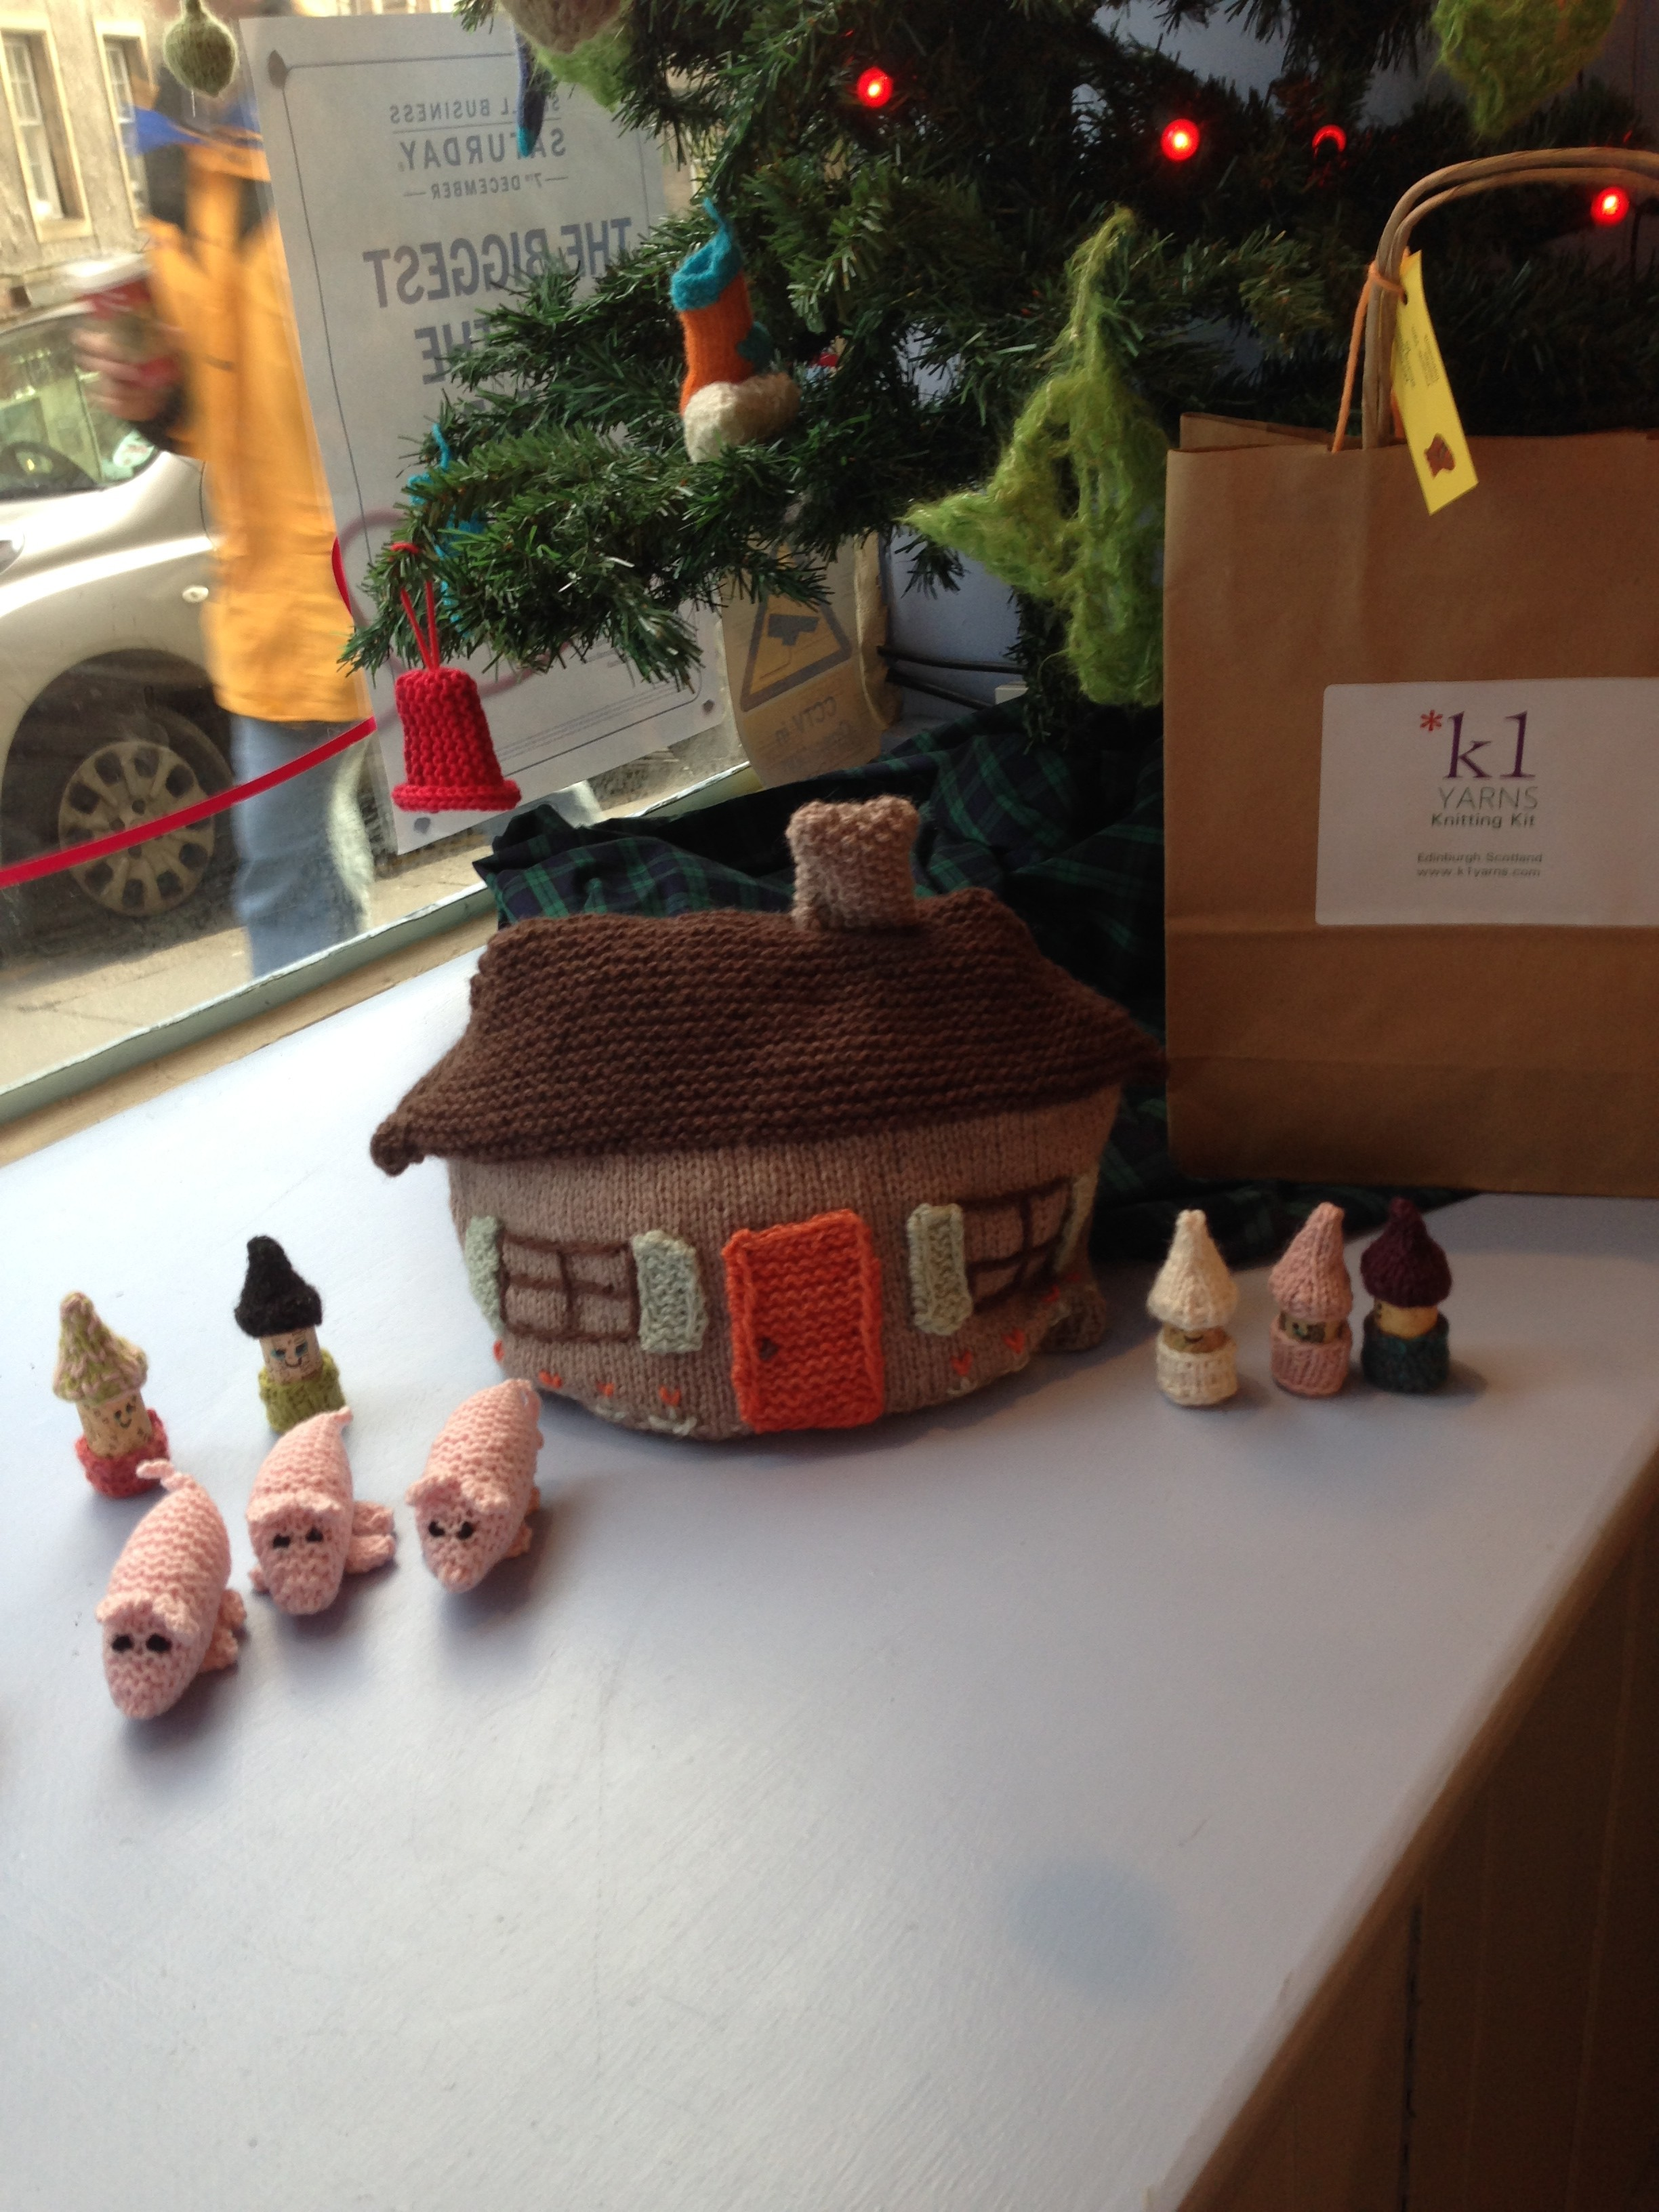 Lovely farm scene in the window of the K1 yarn shop